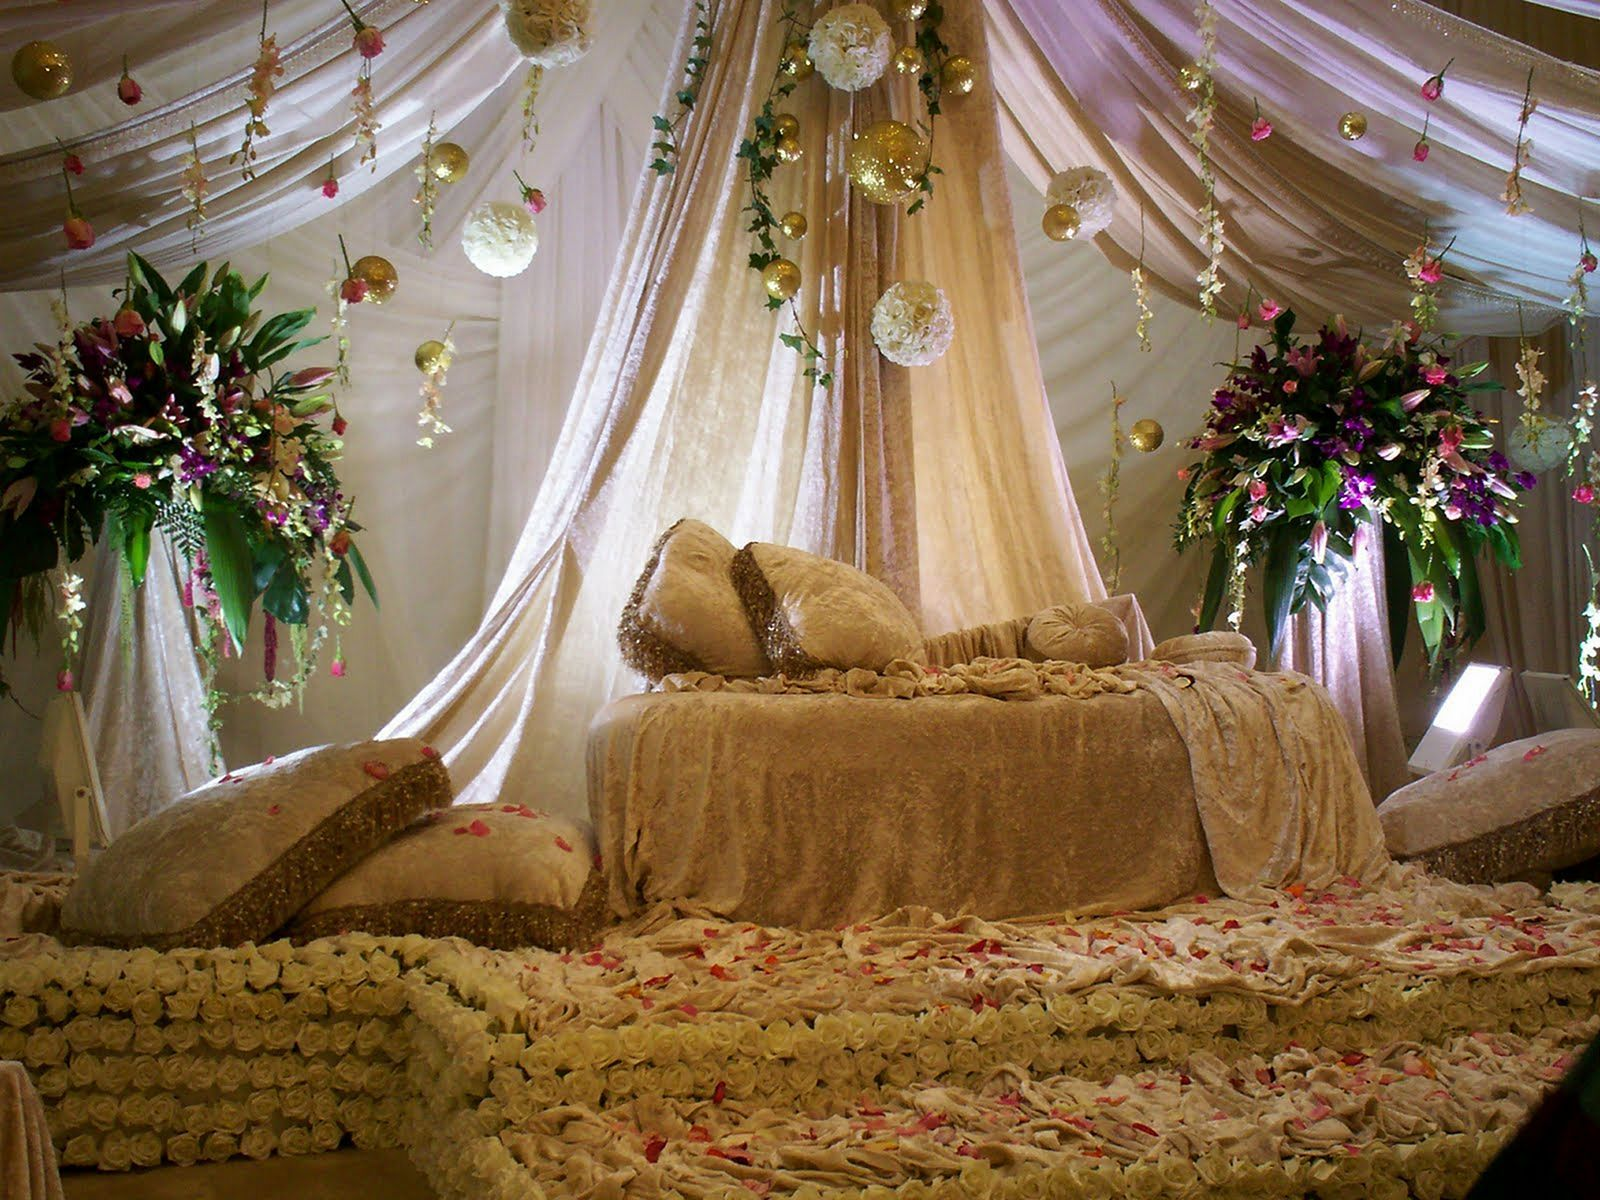 Wedding stage simple decoration images   Best Design Wedding Stage Ideas For Your Awesome Wedding Ceremony